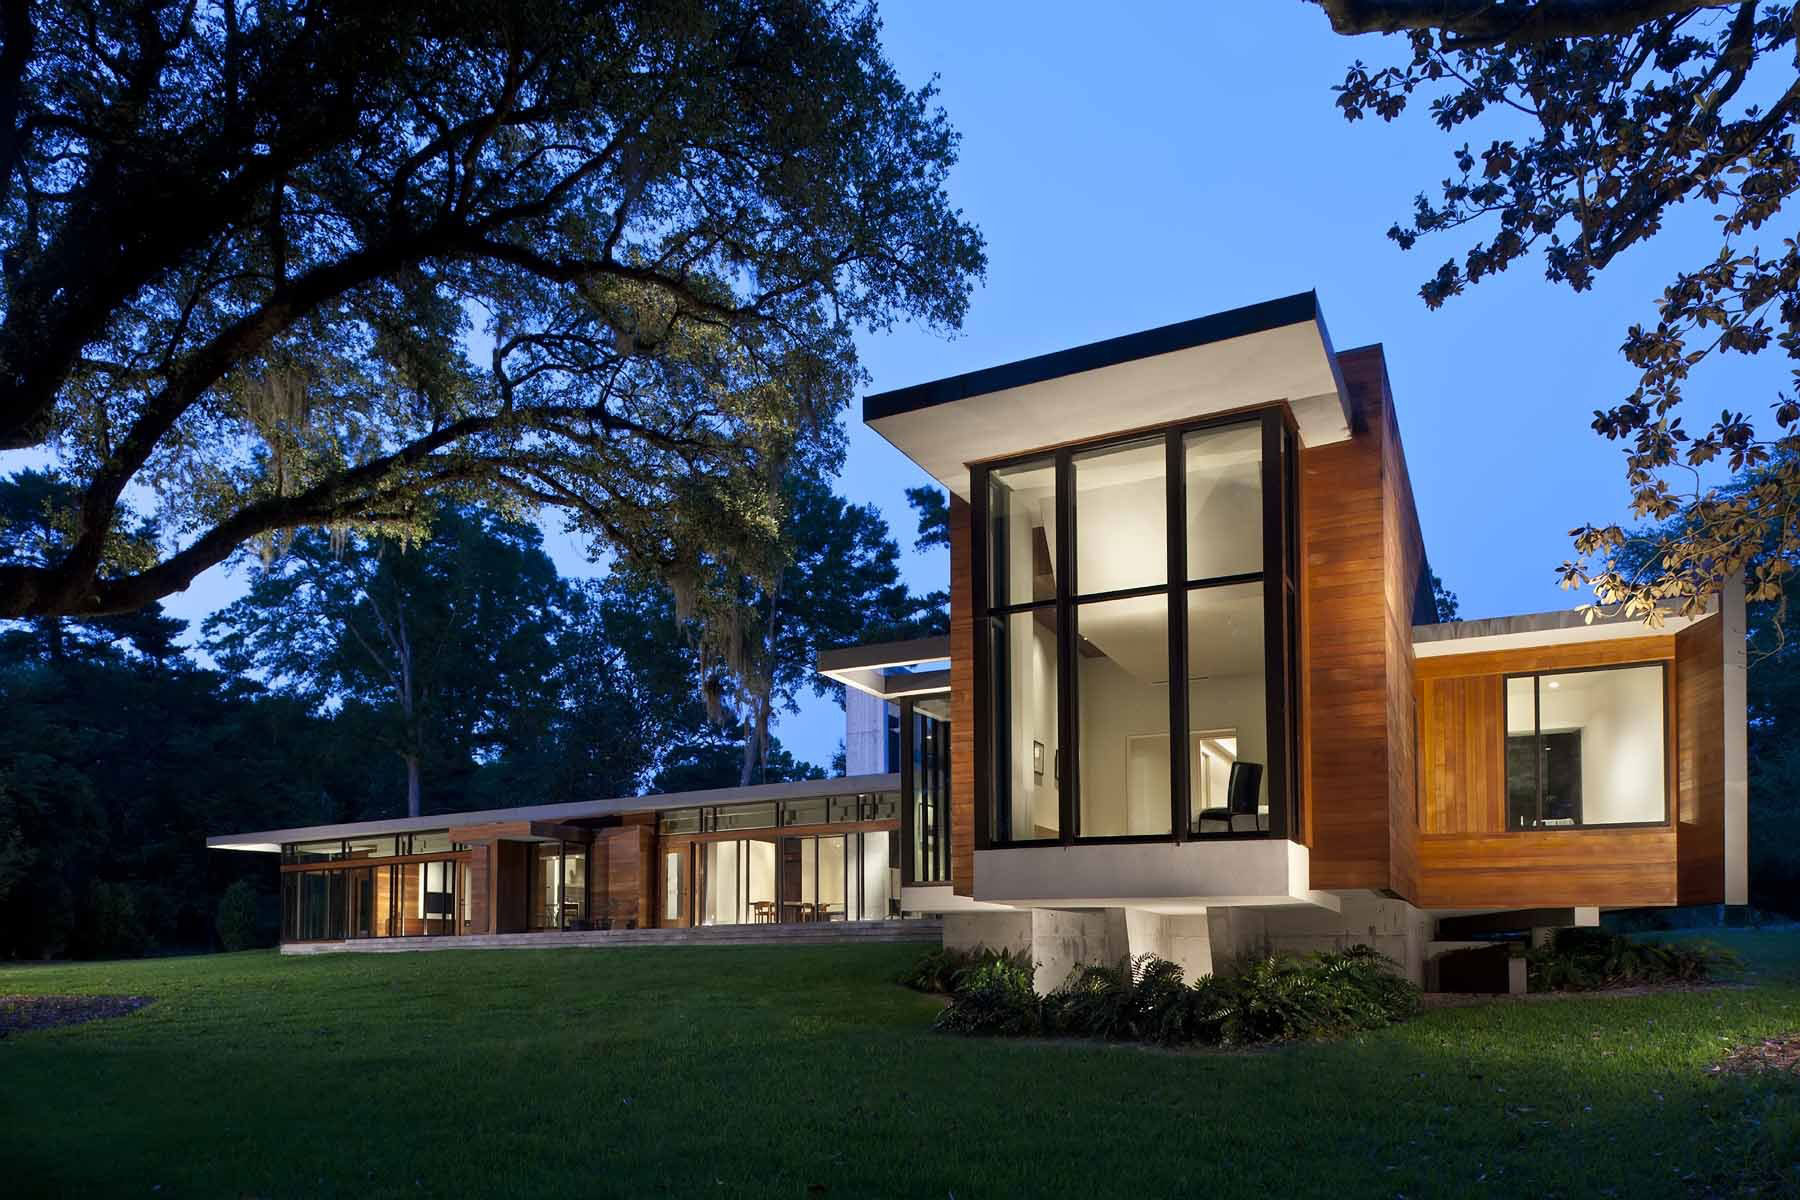 Bray's Island SC Modern II By SBCH Architects